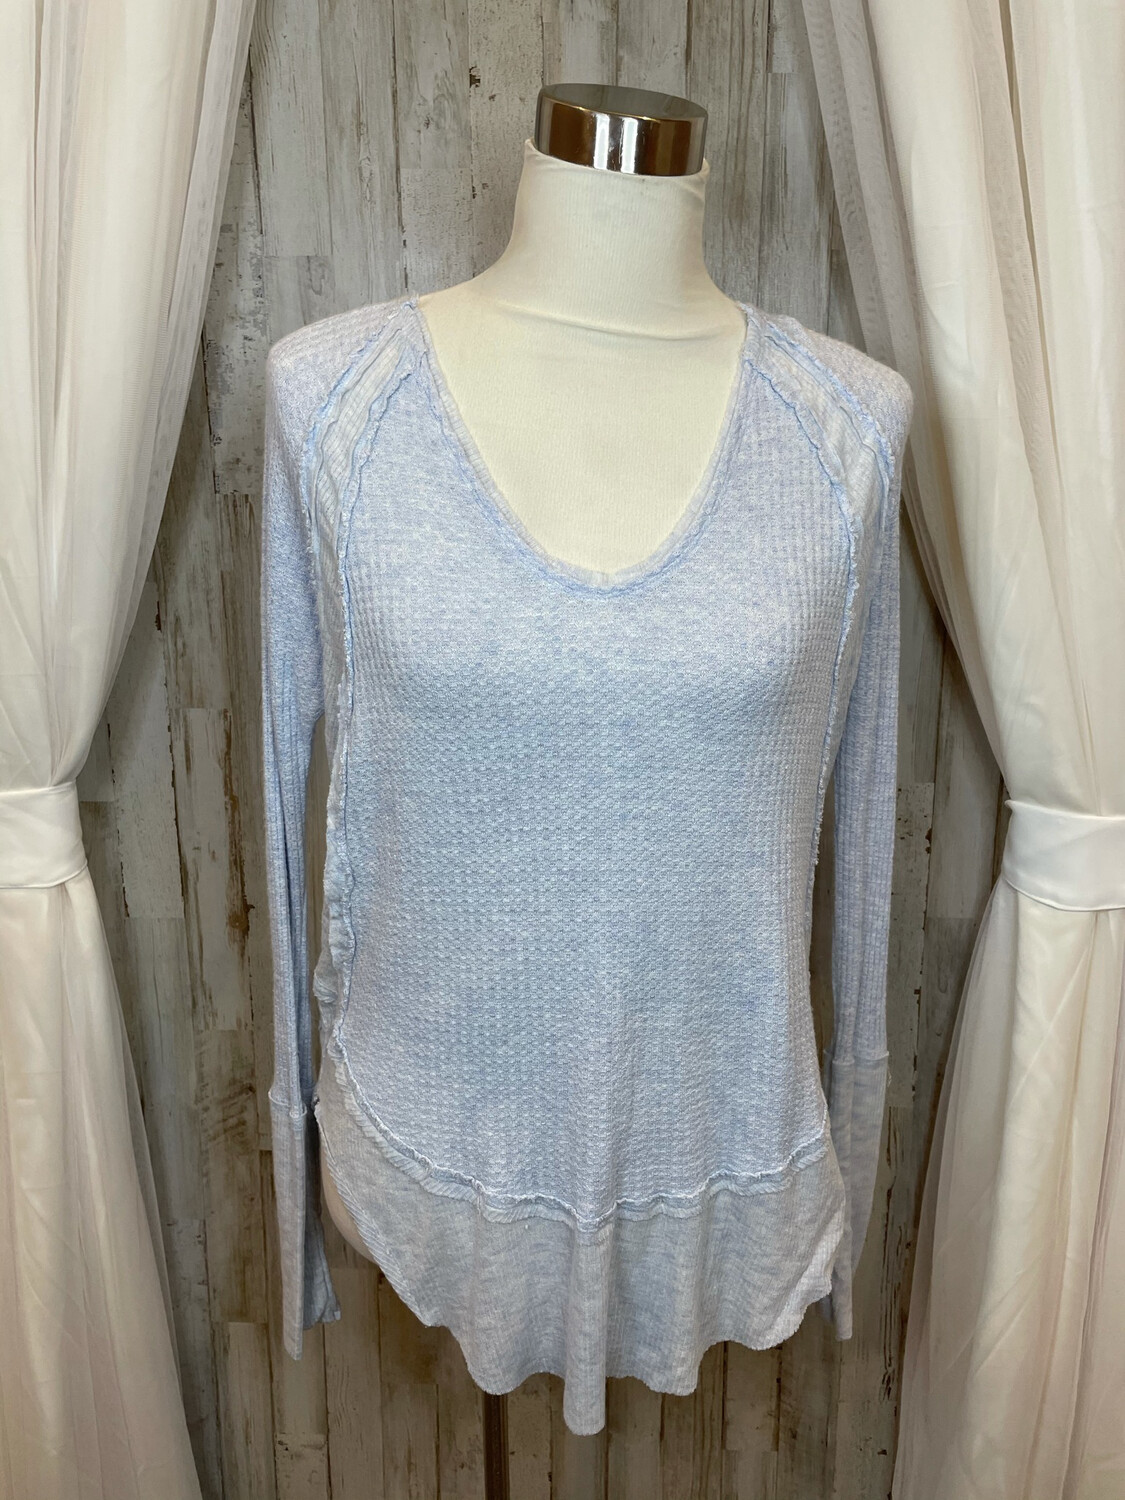 We The Free Light Blue Waffle Knit Long Sleeve Top - XS